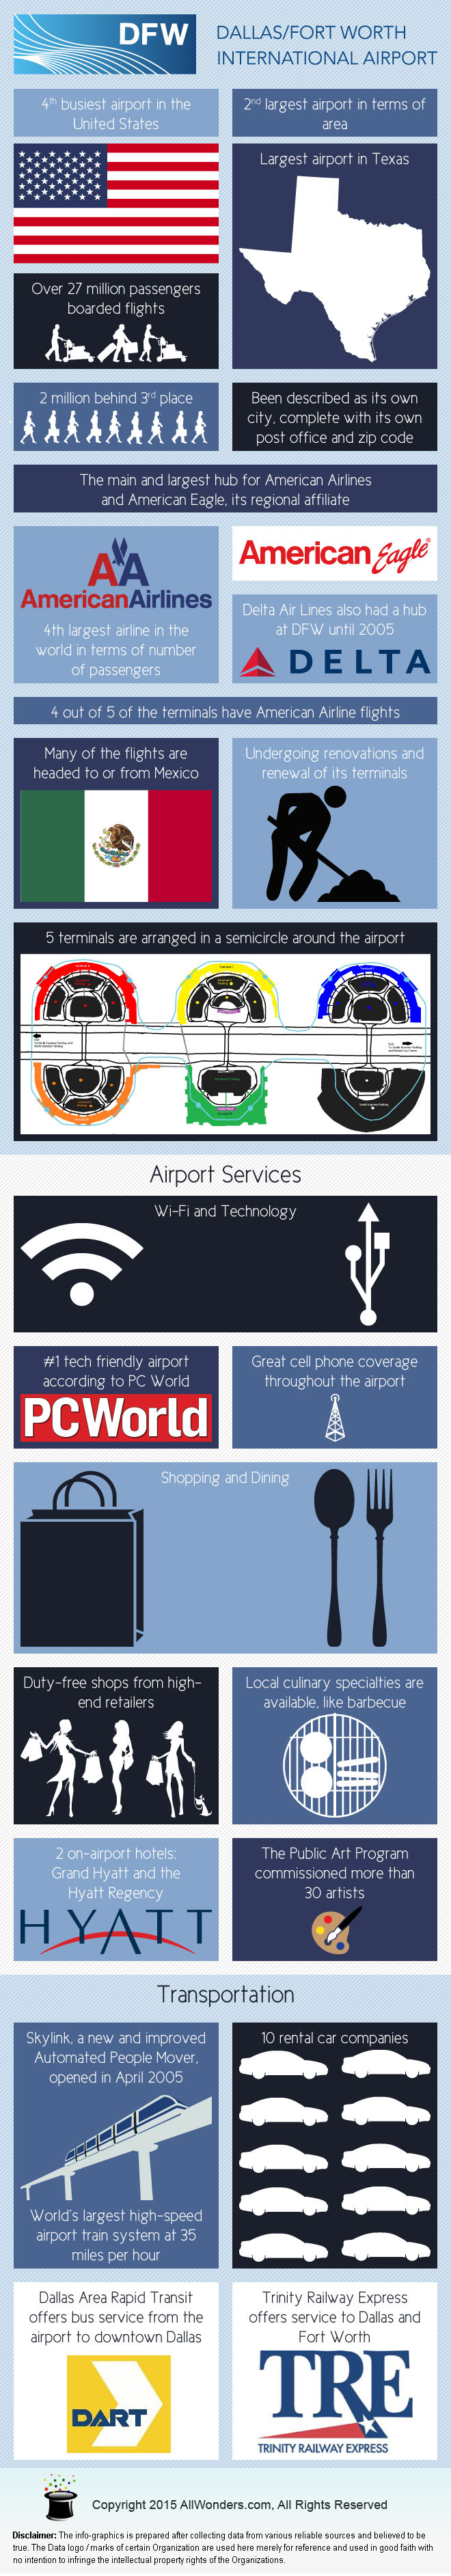 Dallas/Fort Worth International Airport Infographic